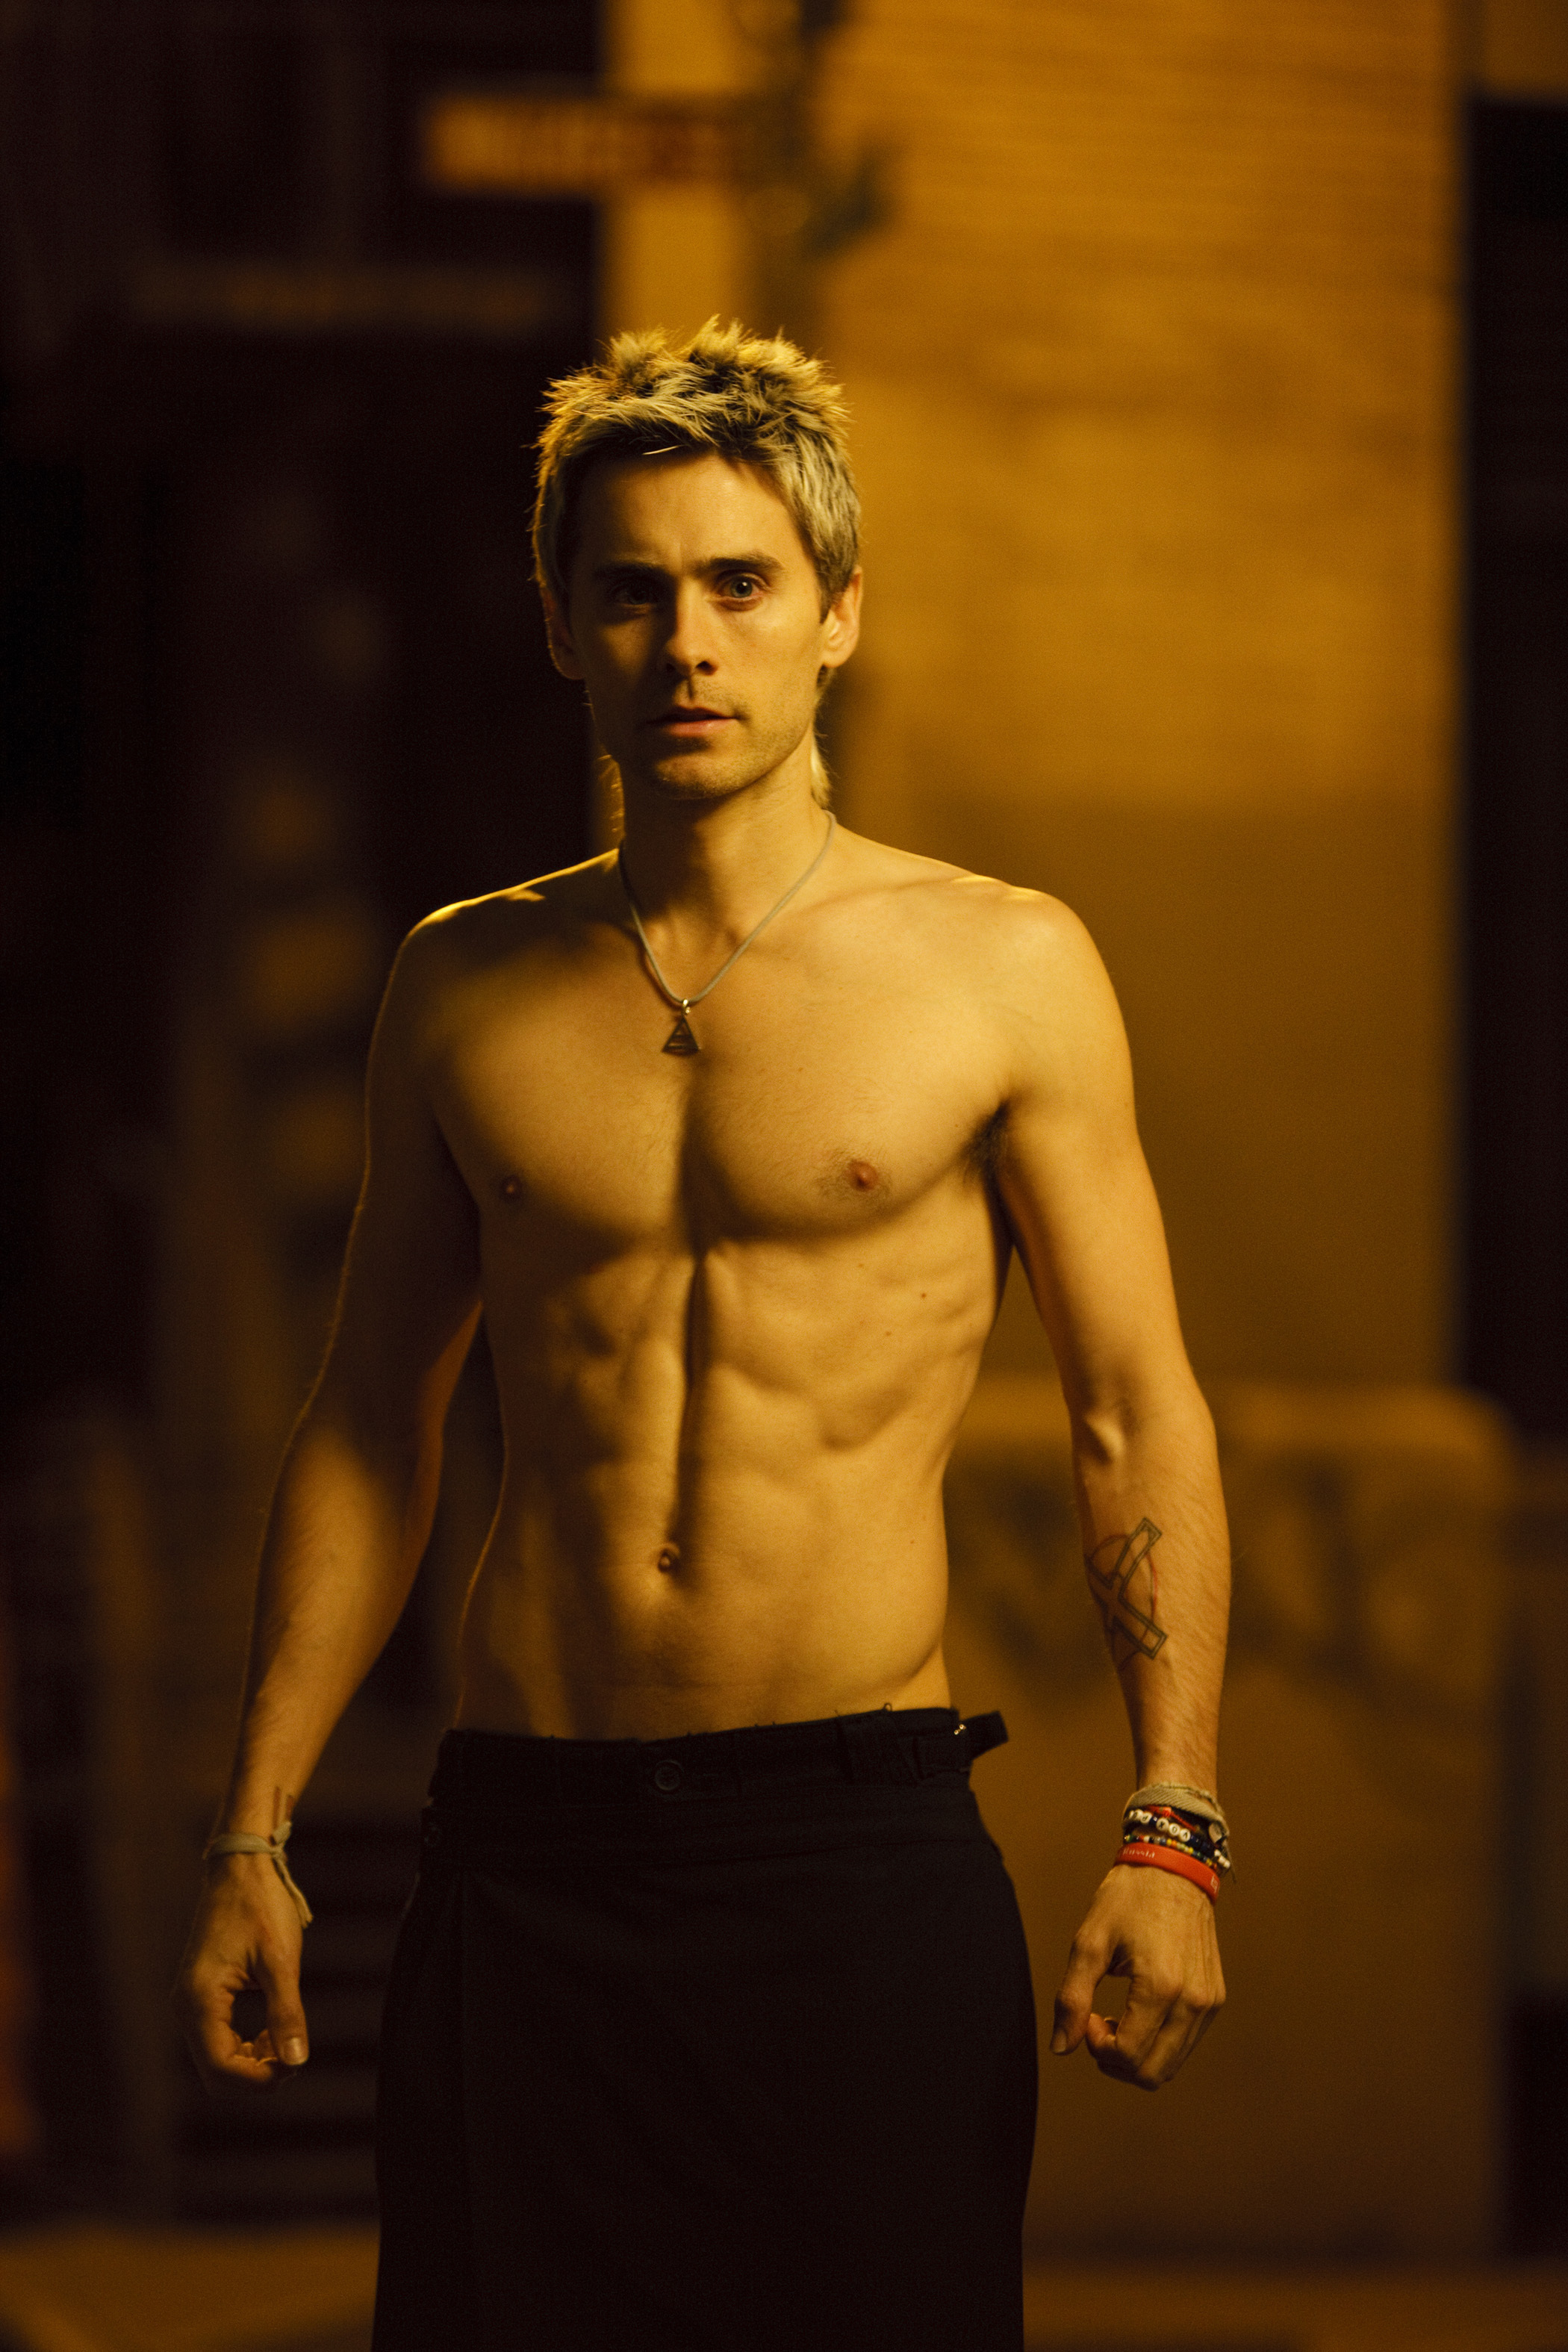 35330 Screensavers and Wallpapers Artists for phone. Download People, Artists, Men, Jared Leto pictures for free